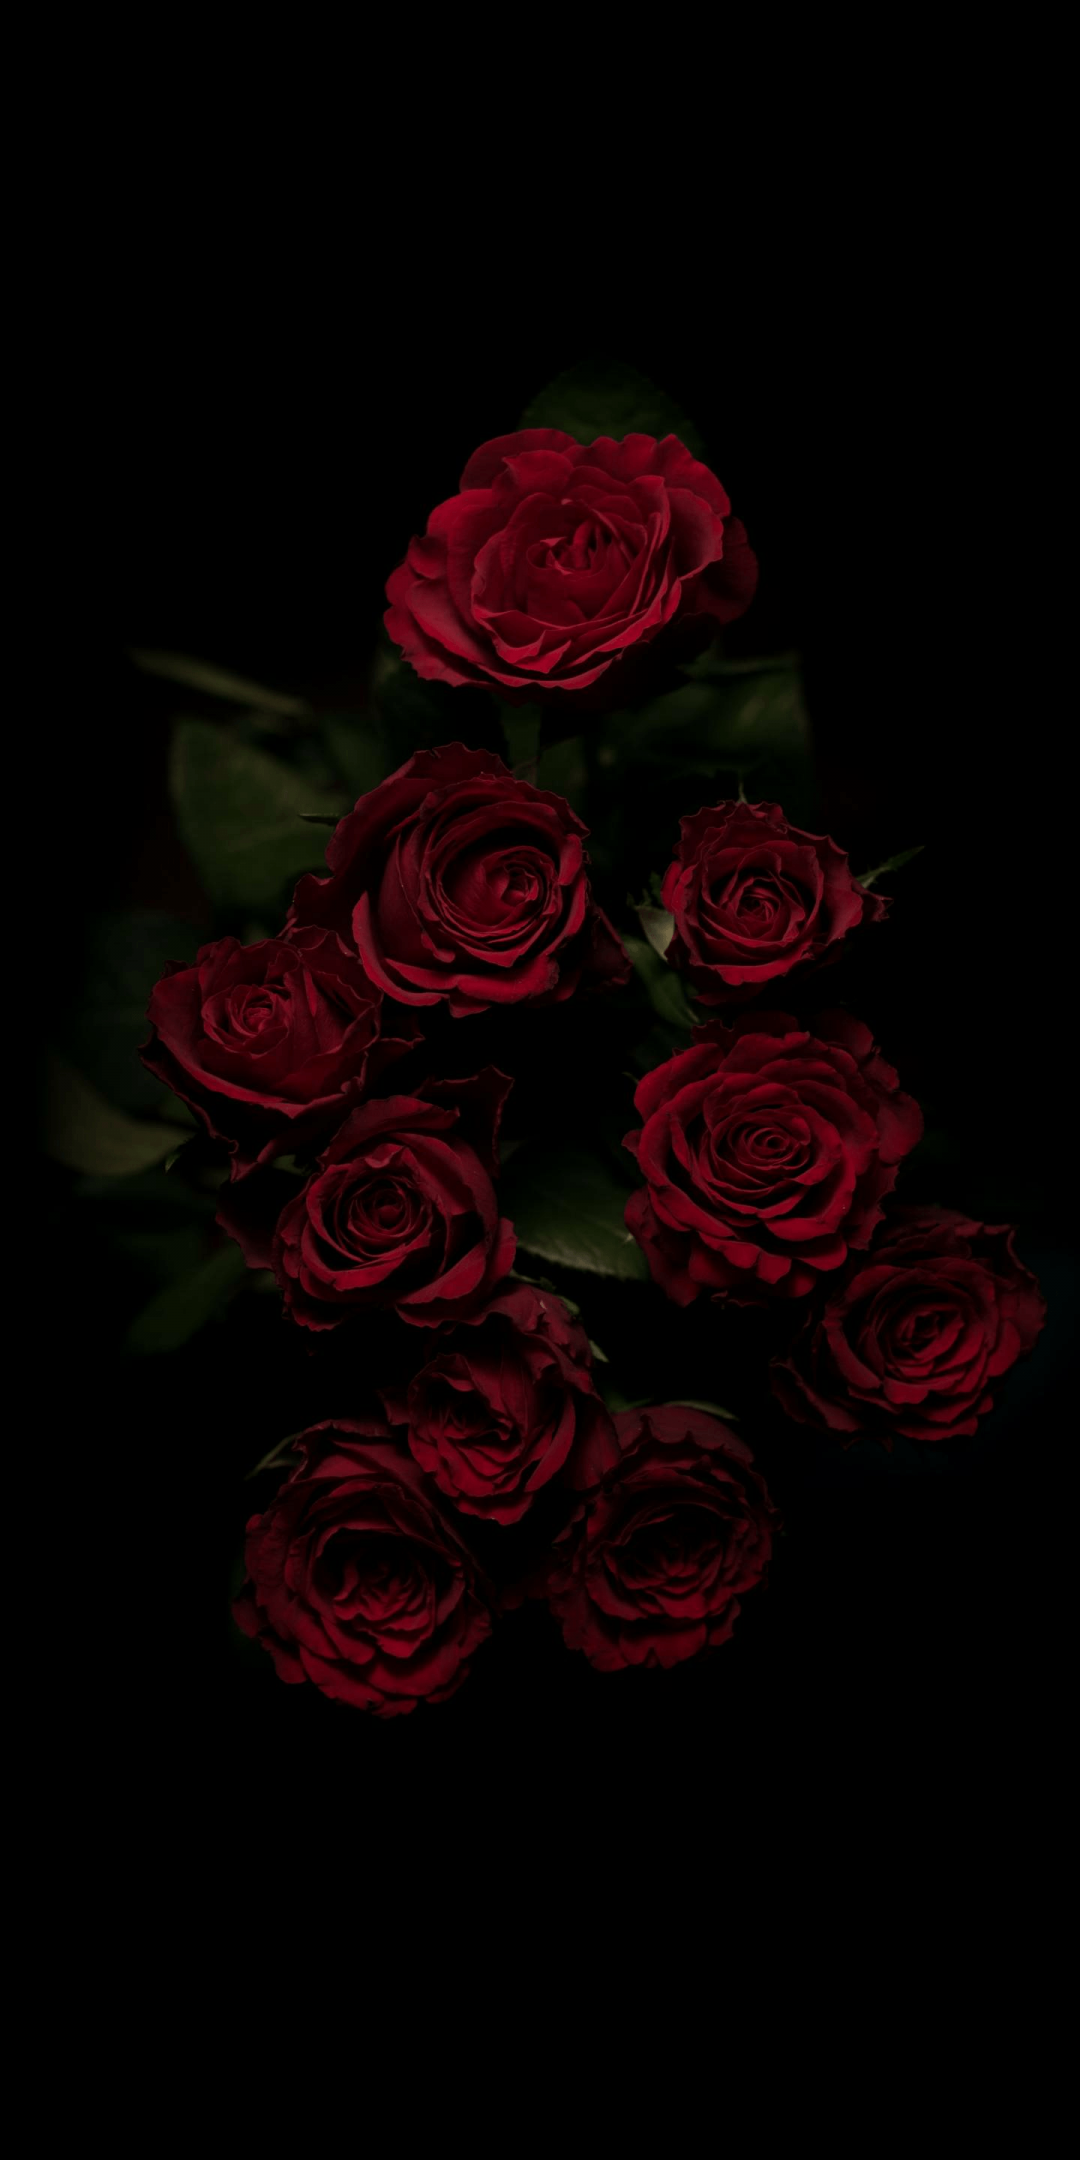 Flower Aesthetic Android Iphone Desktop Hd Backgrounds Wallpapers 1080p 4k Rose Wallpaper Red Roses Wallpaper Flowers Black Background